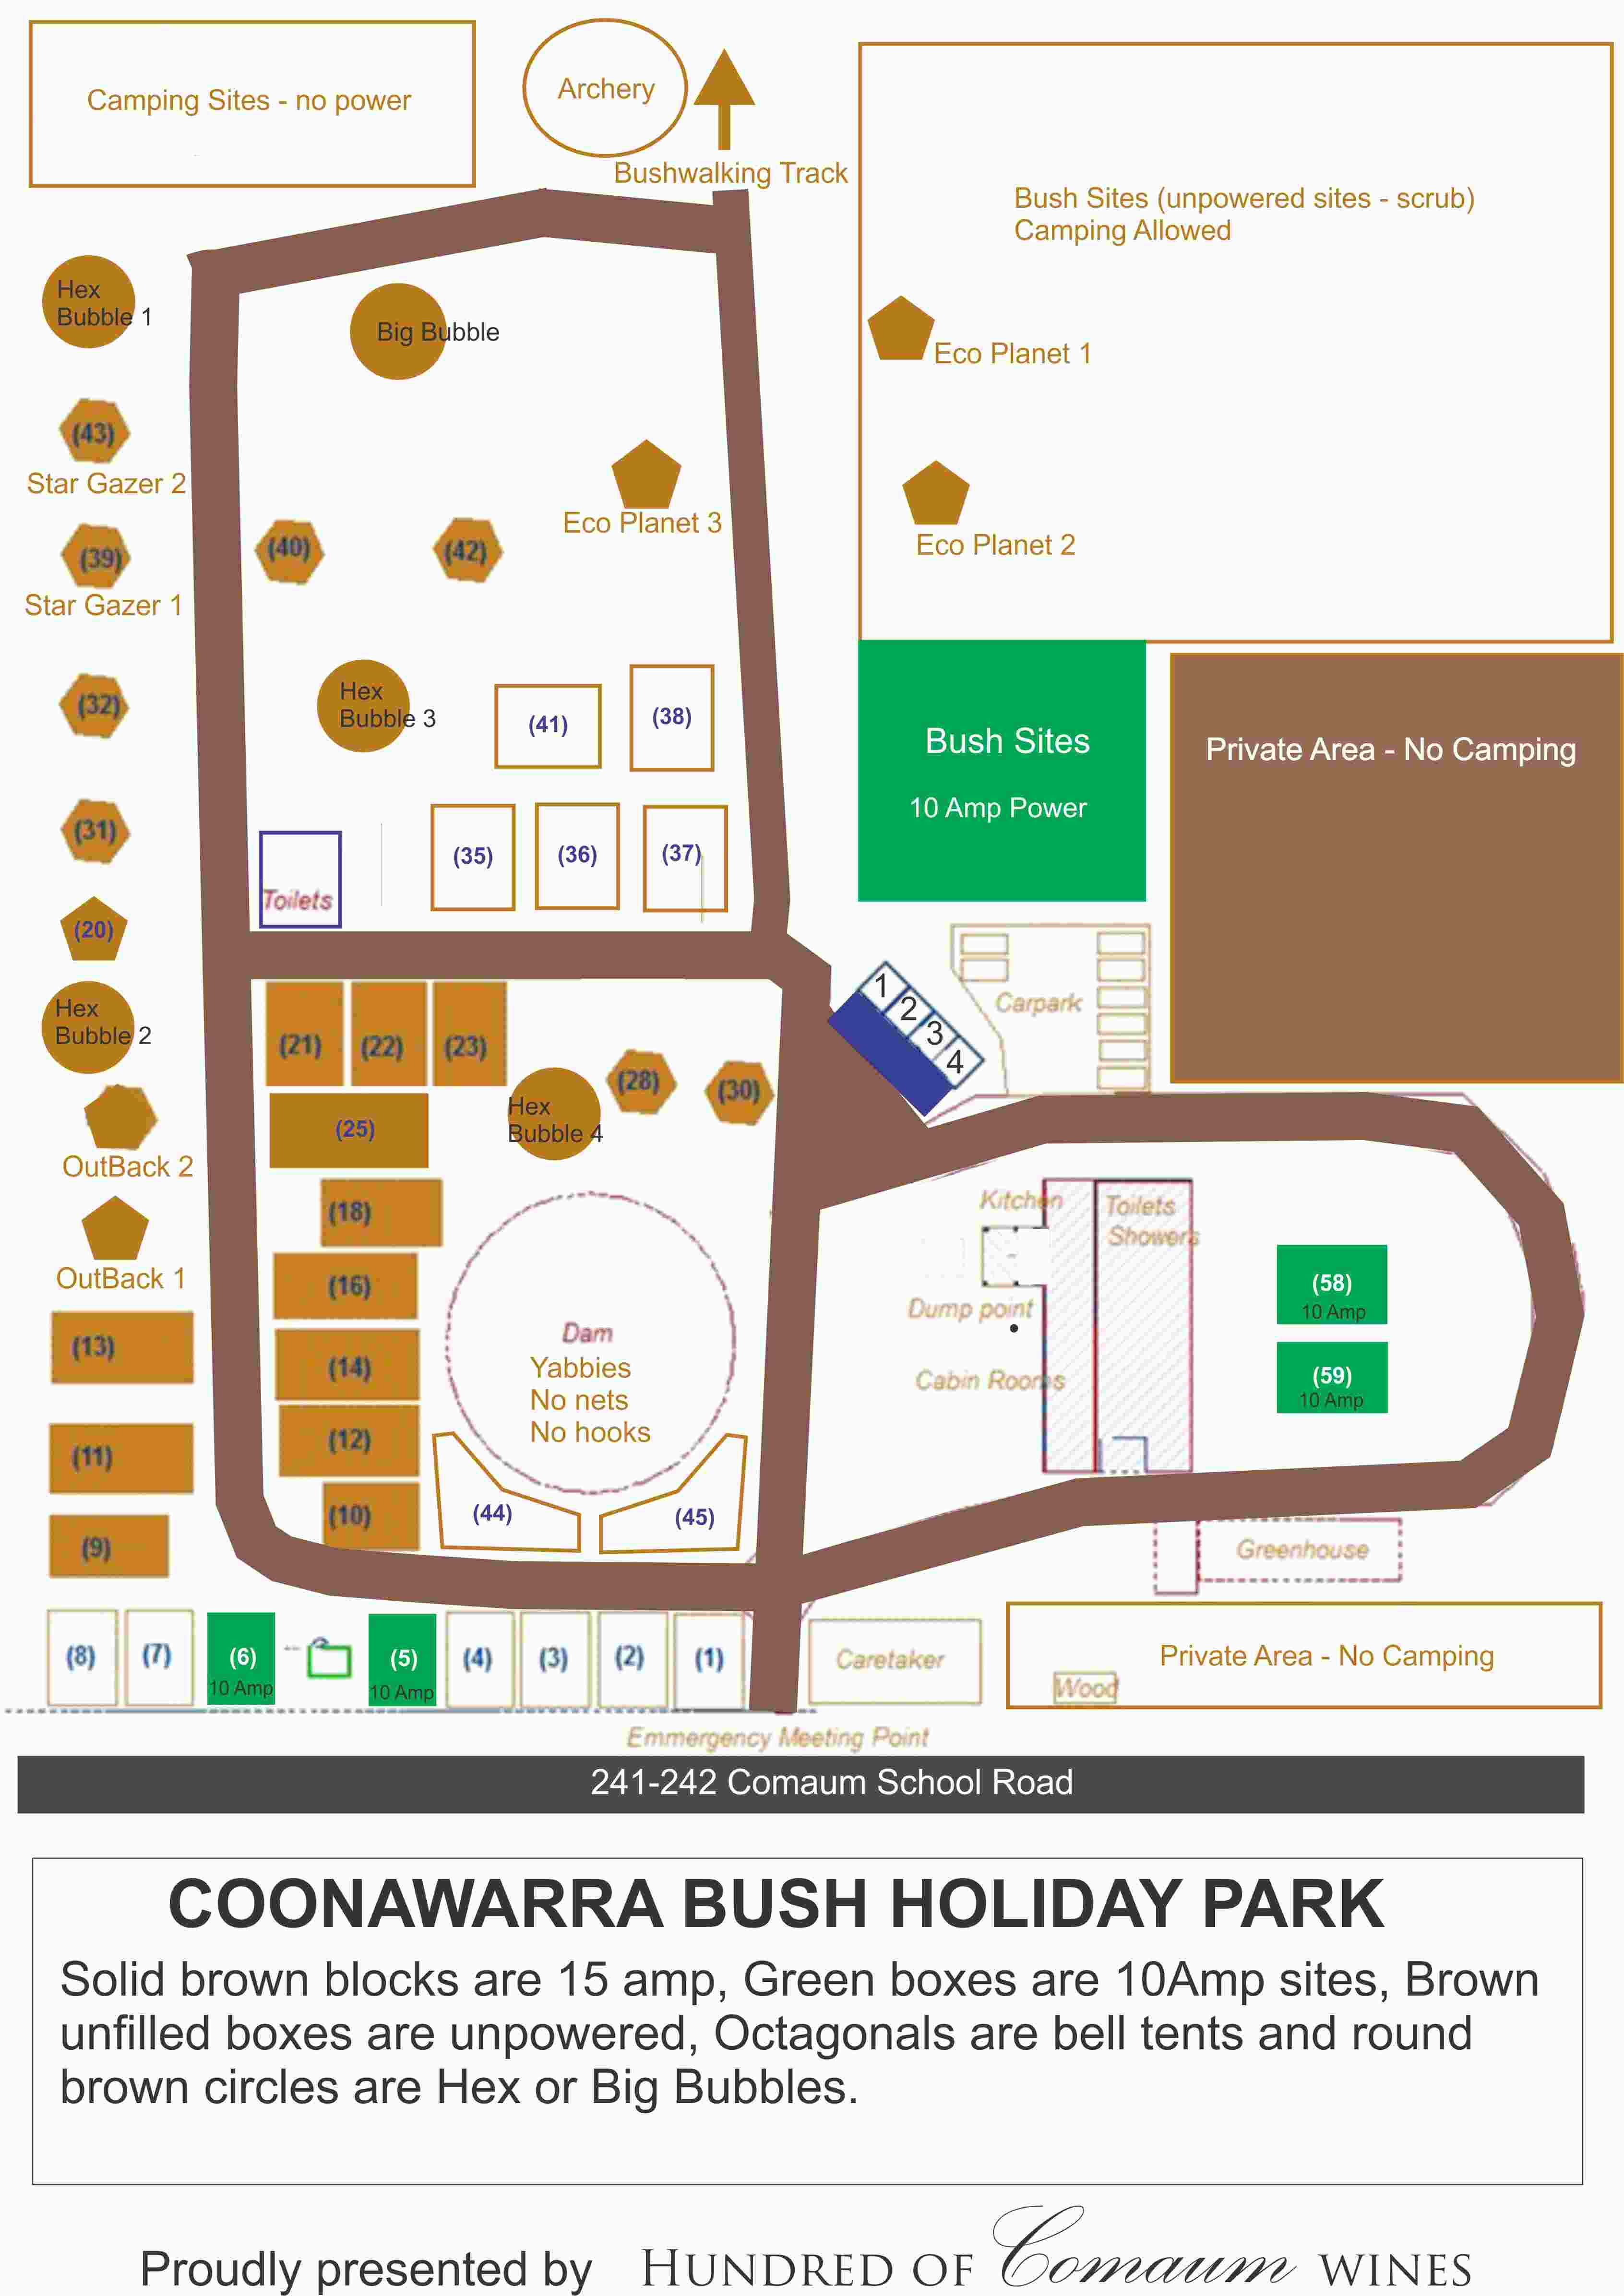 A site map of the whole park